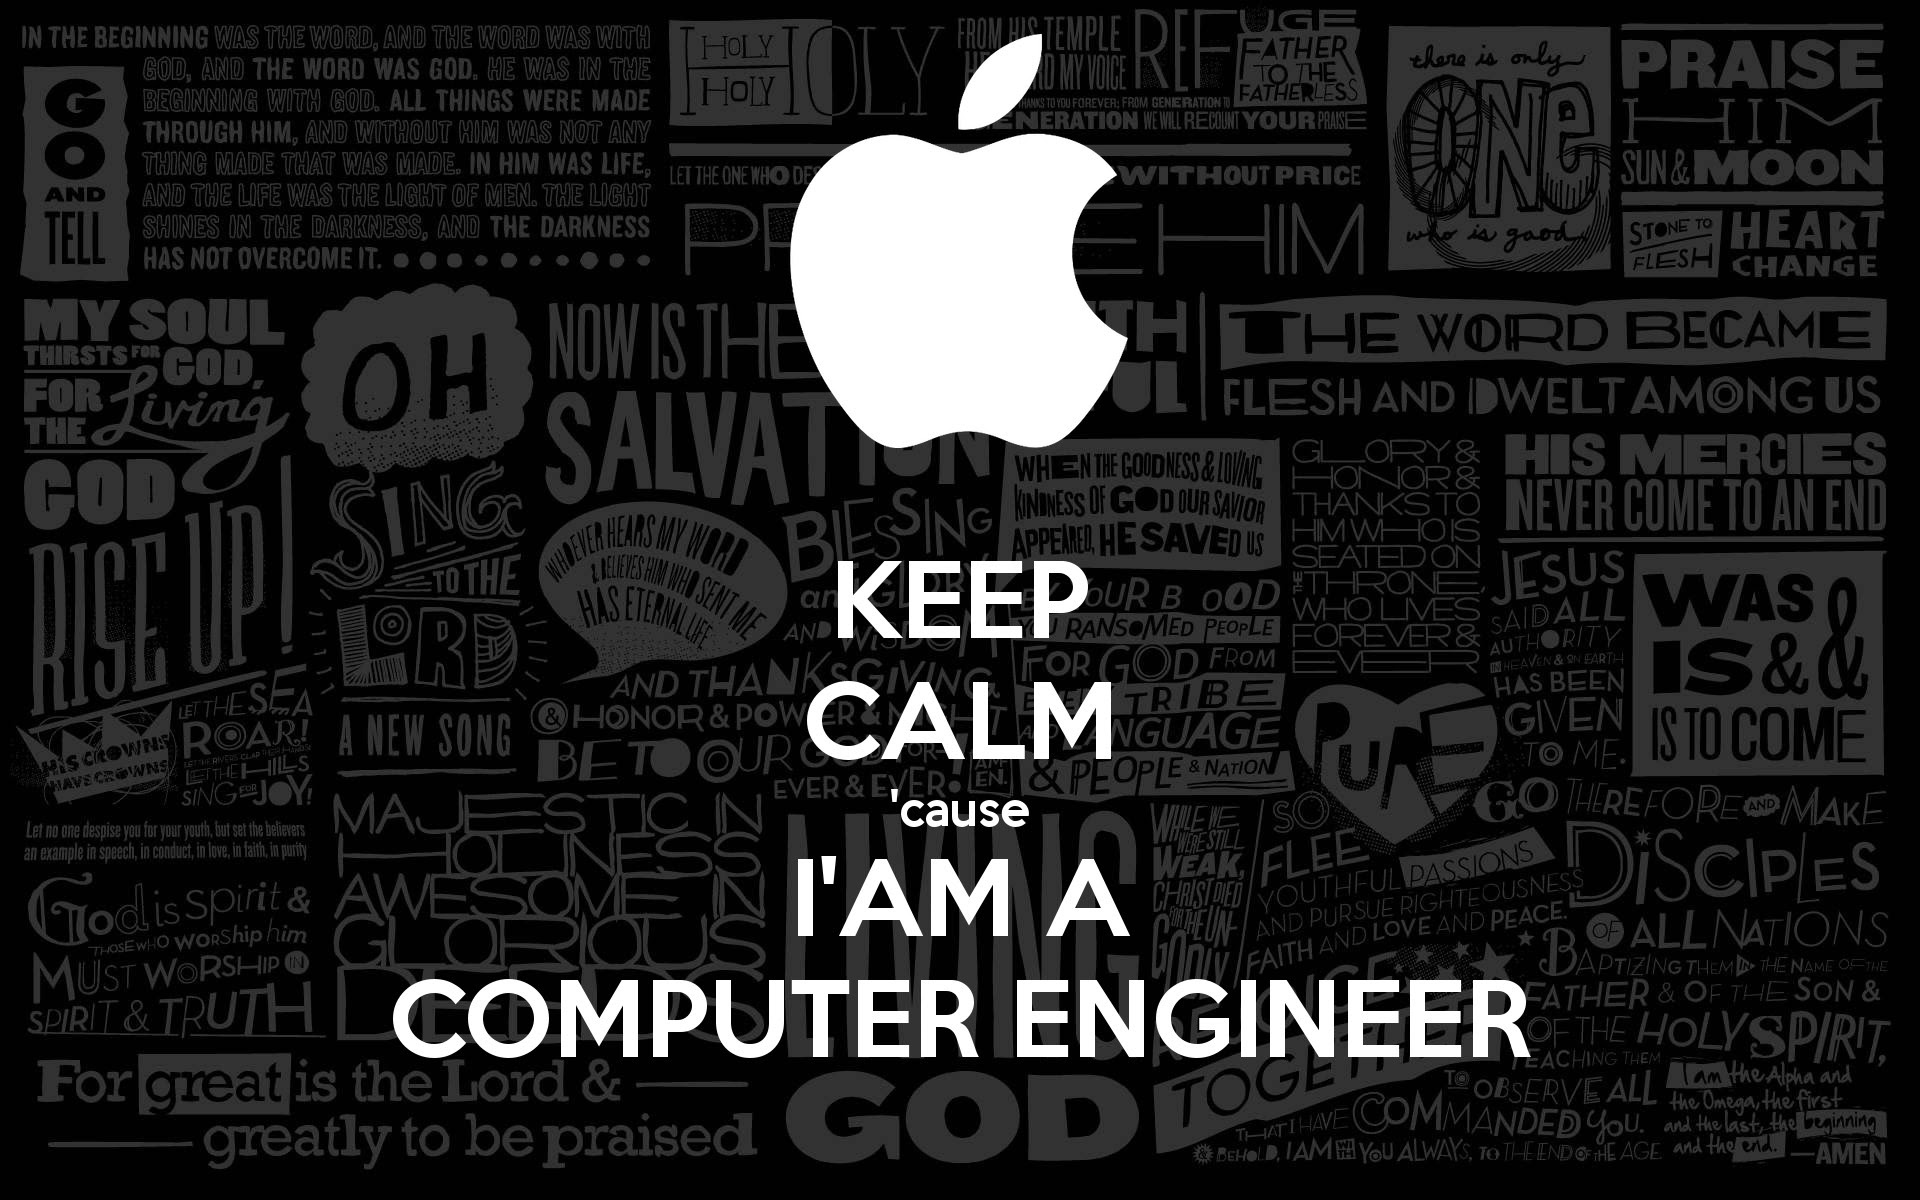 Engineering Wallpaper Images for Computer (69+ images)